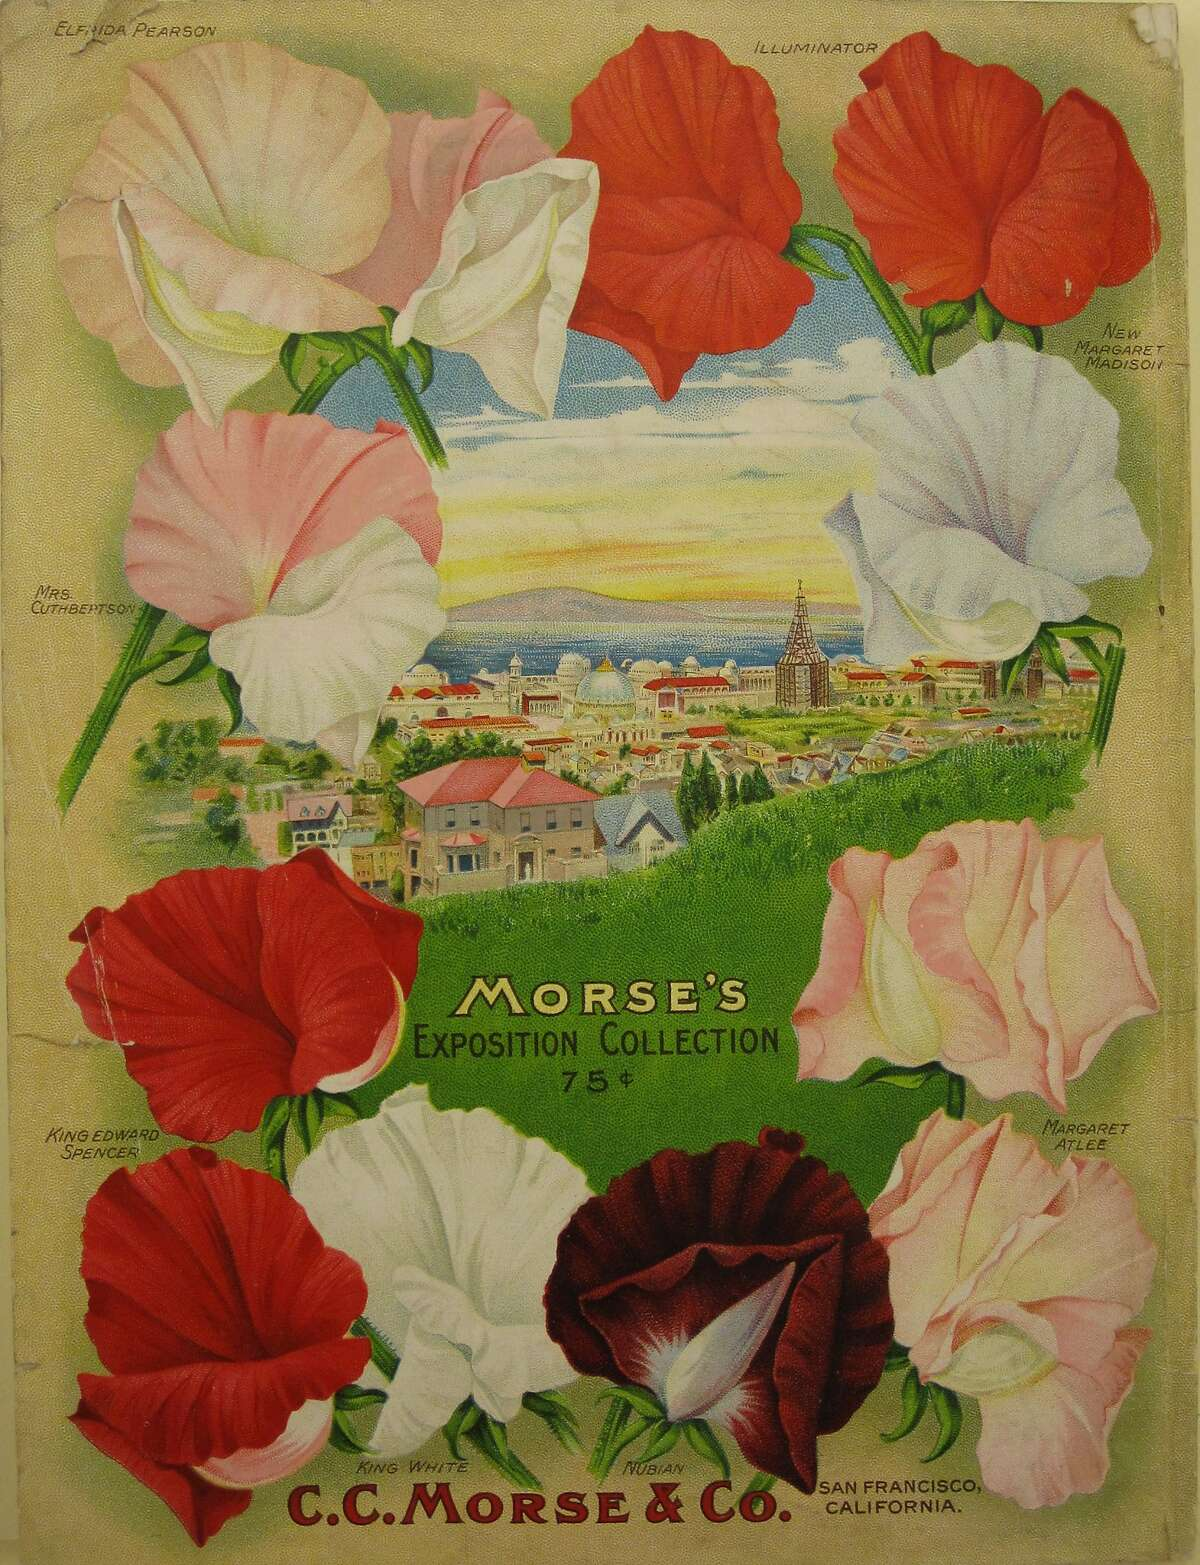 Credit: Courtesy, California Historical Society, Business Ephemera Collection Caption: The back cover from a 1915 Morse Seed Catalog showed the Panama-Pacific International Exposition, with the Bay and the Marin shoreline in the background.